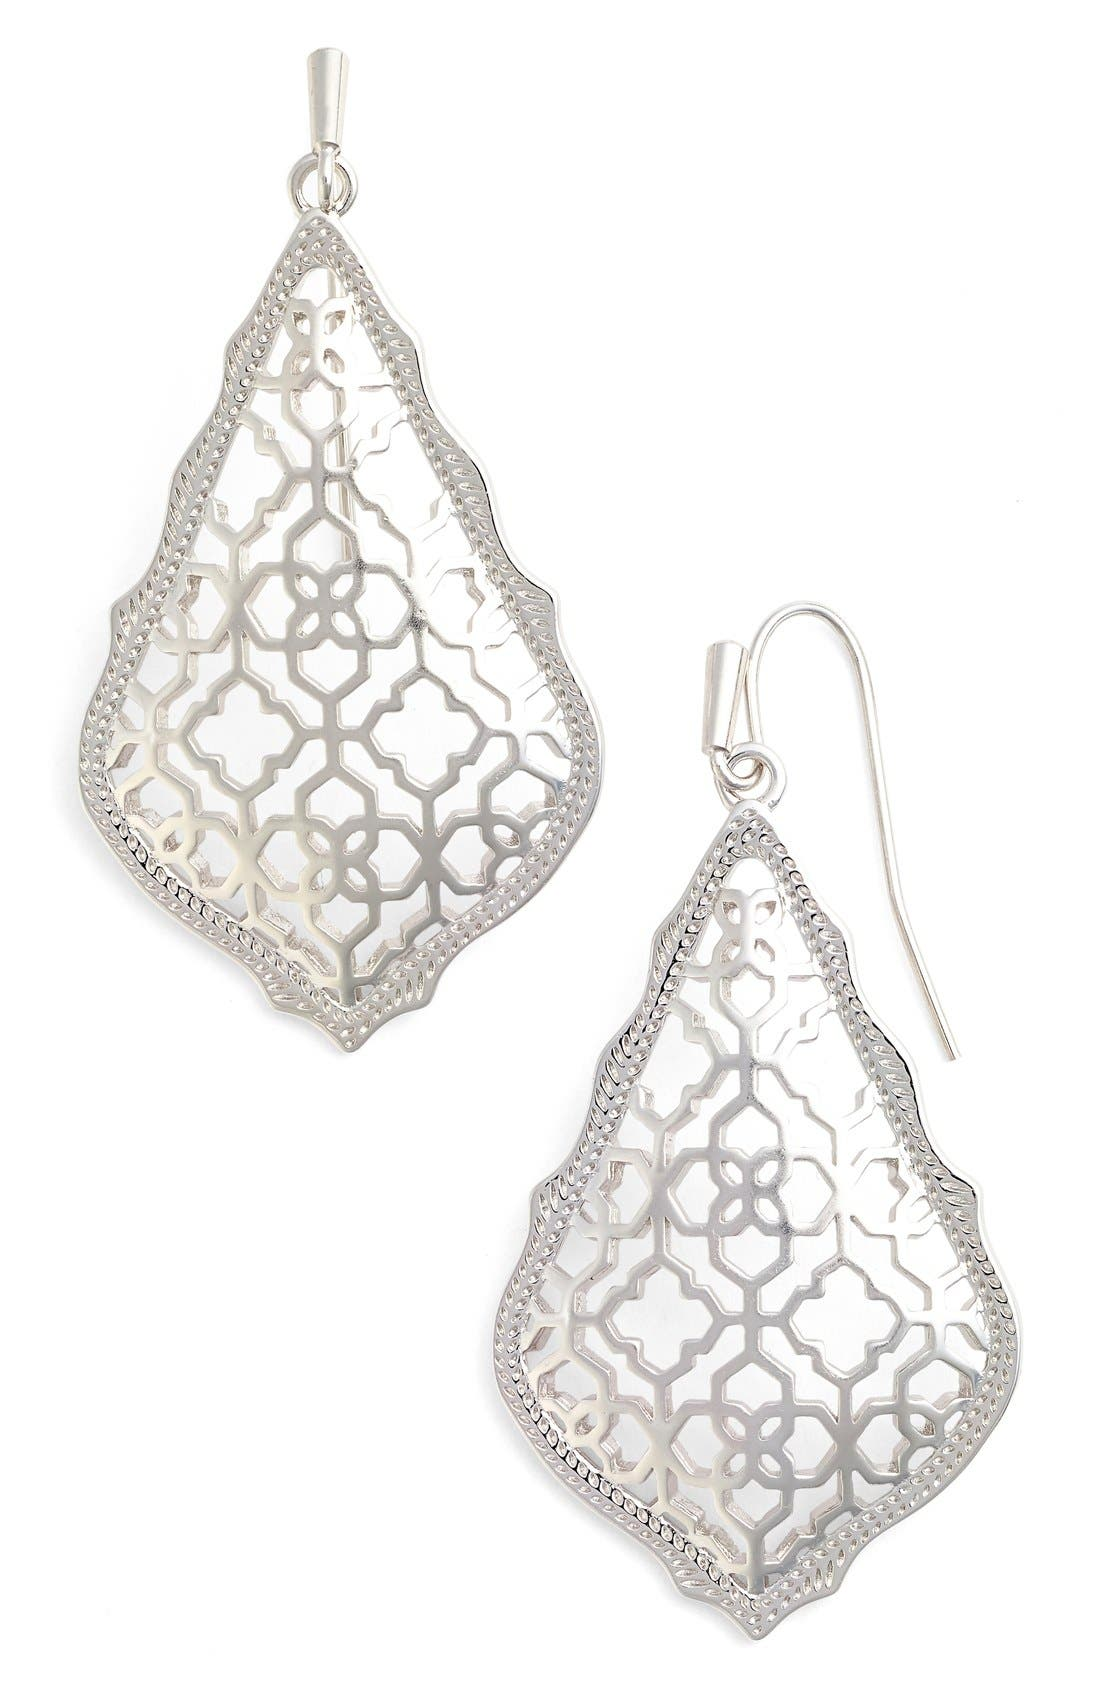 Main Image - Kendra Scott 'Addie' Drop Earrings